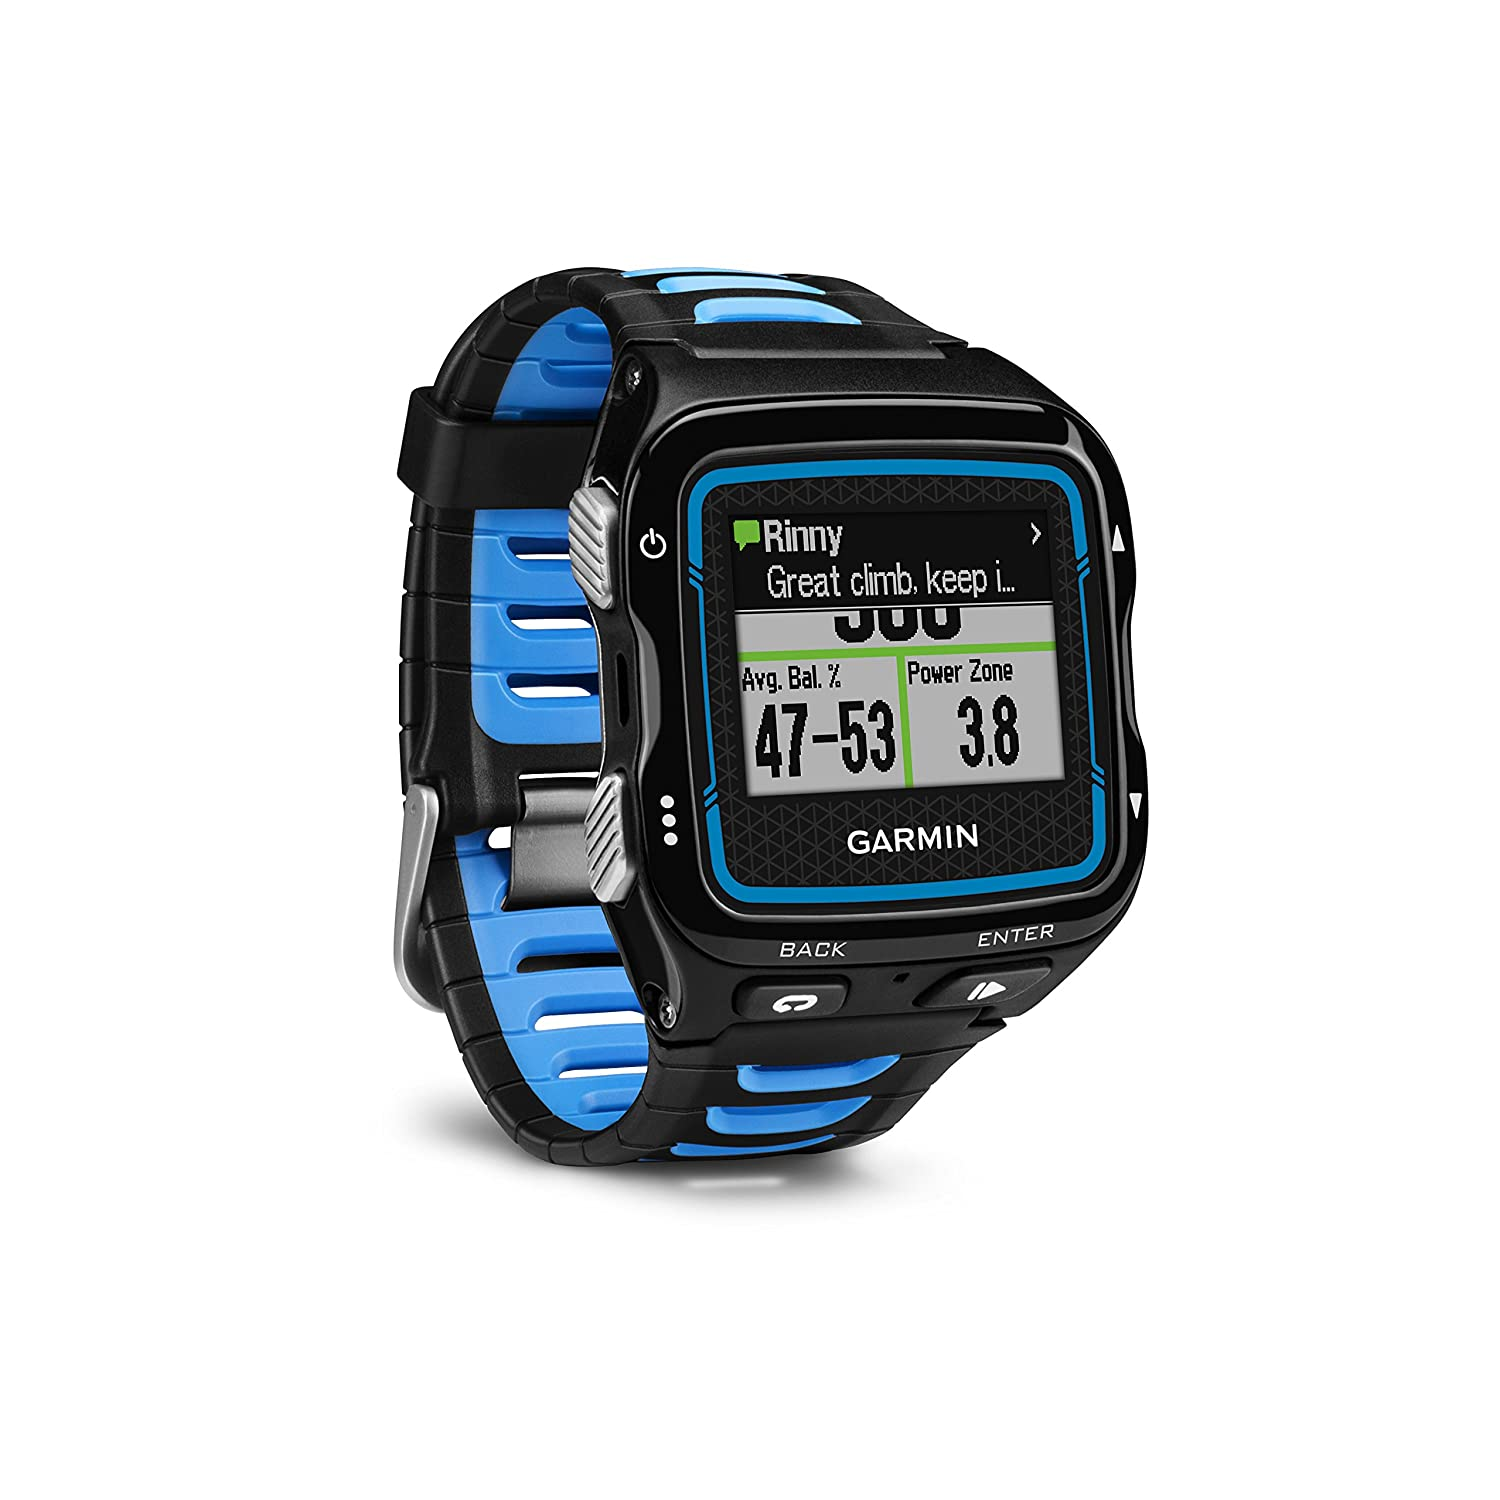 factory refurbished garmin watches parent watch fenix gps abc navigating